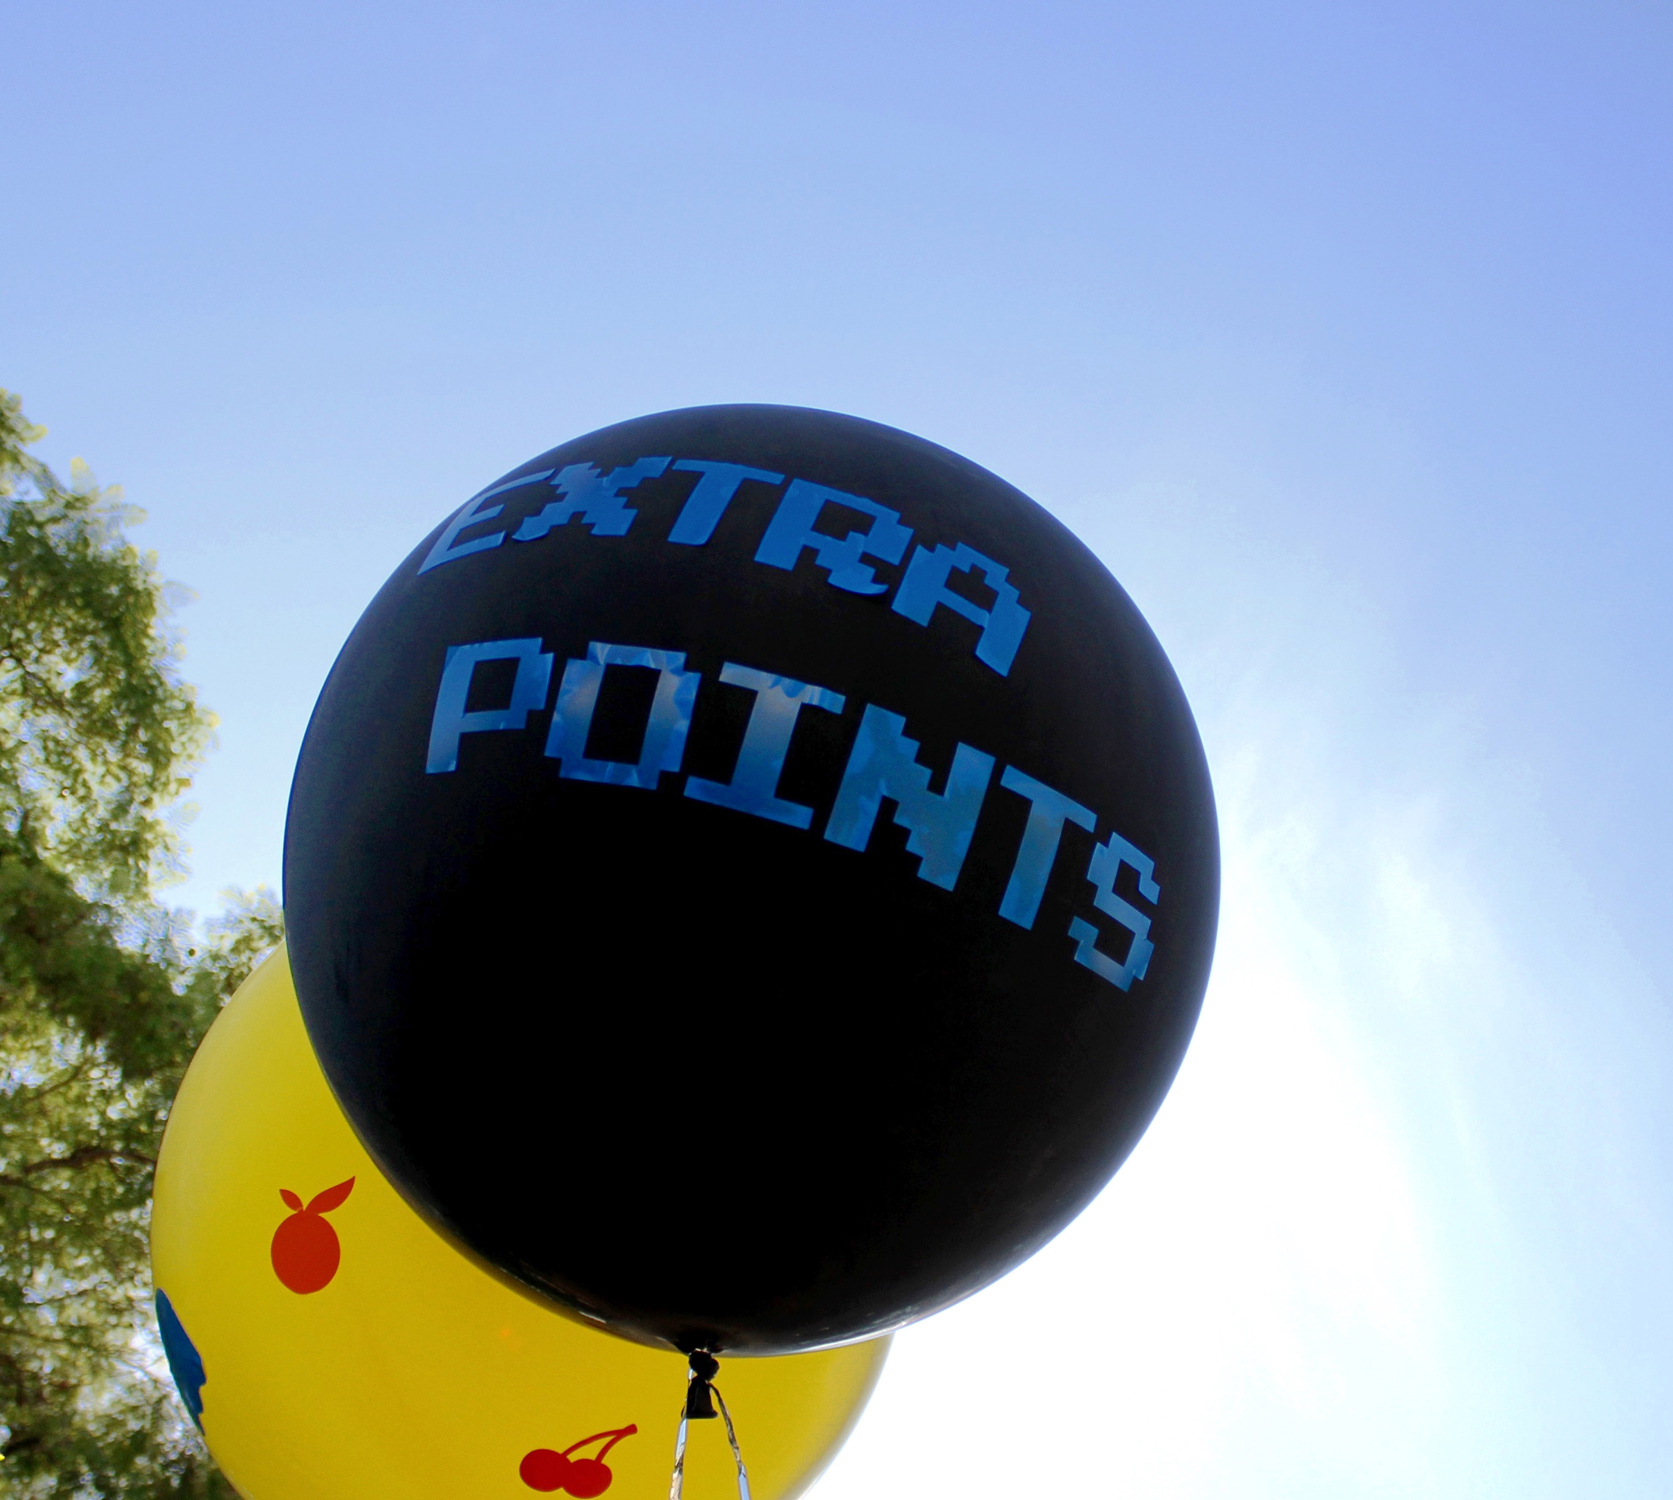 tarynco-events-pacman-extrapoints-balloon-kidsparty.jpg